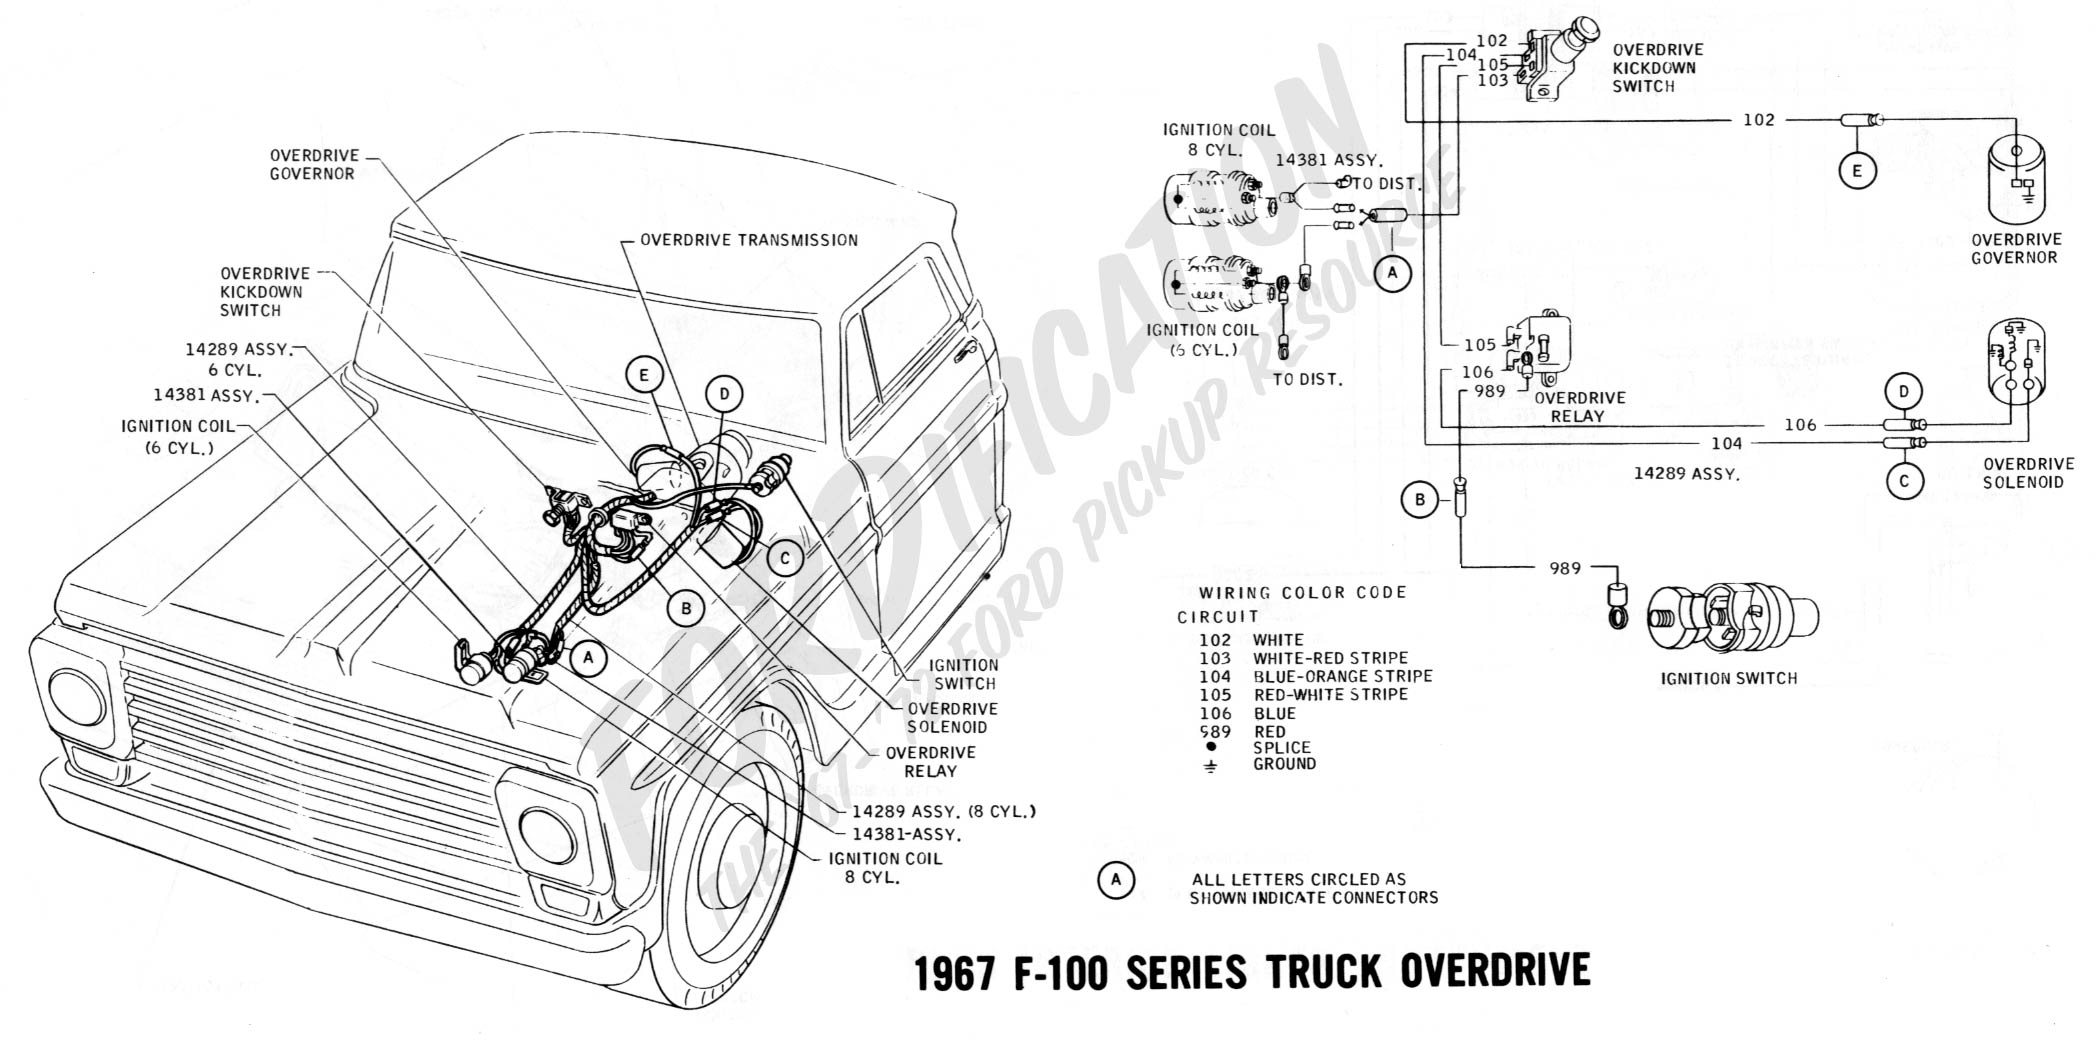 1967 Ford F150 Wiring Diagram Reinvent Your 2005 F 150 Schematic Truck Technical Drawings And Schematics Section H Rh Fordification Com 1997